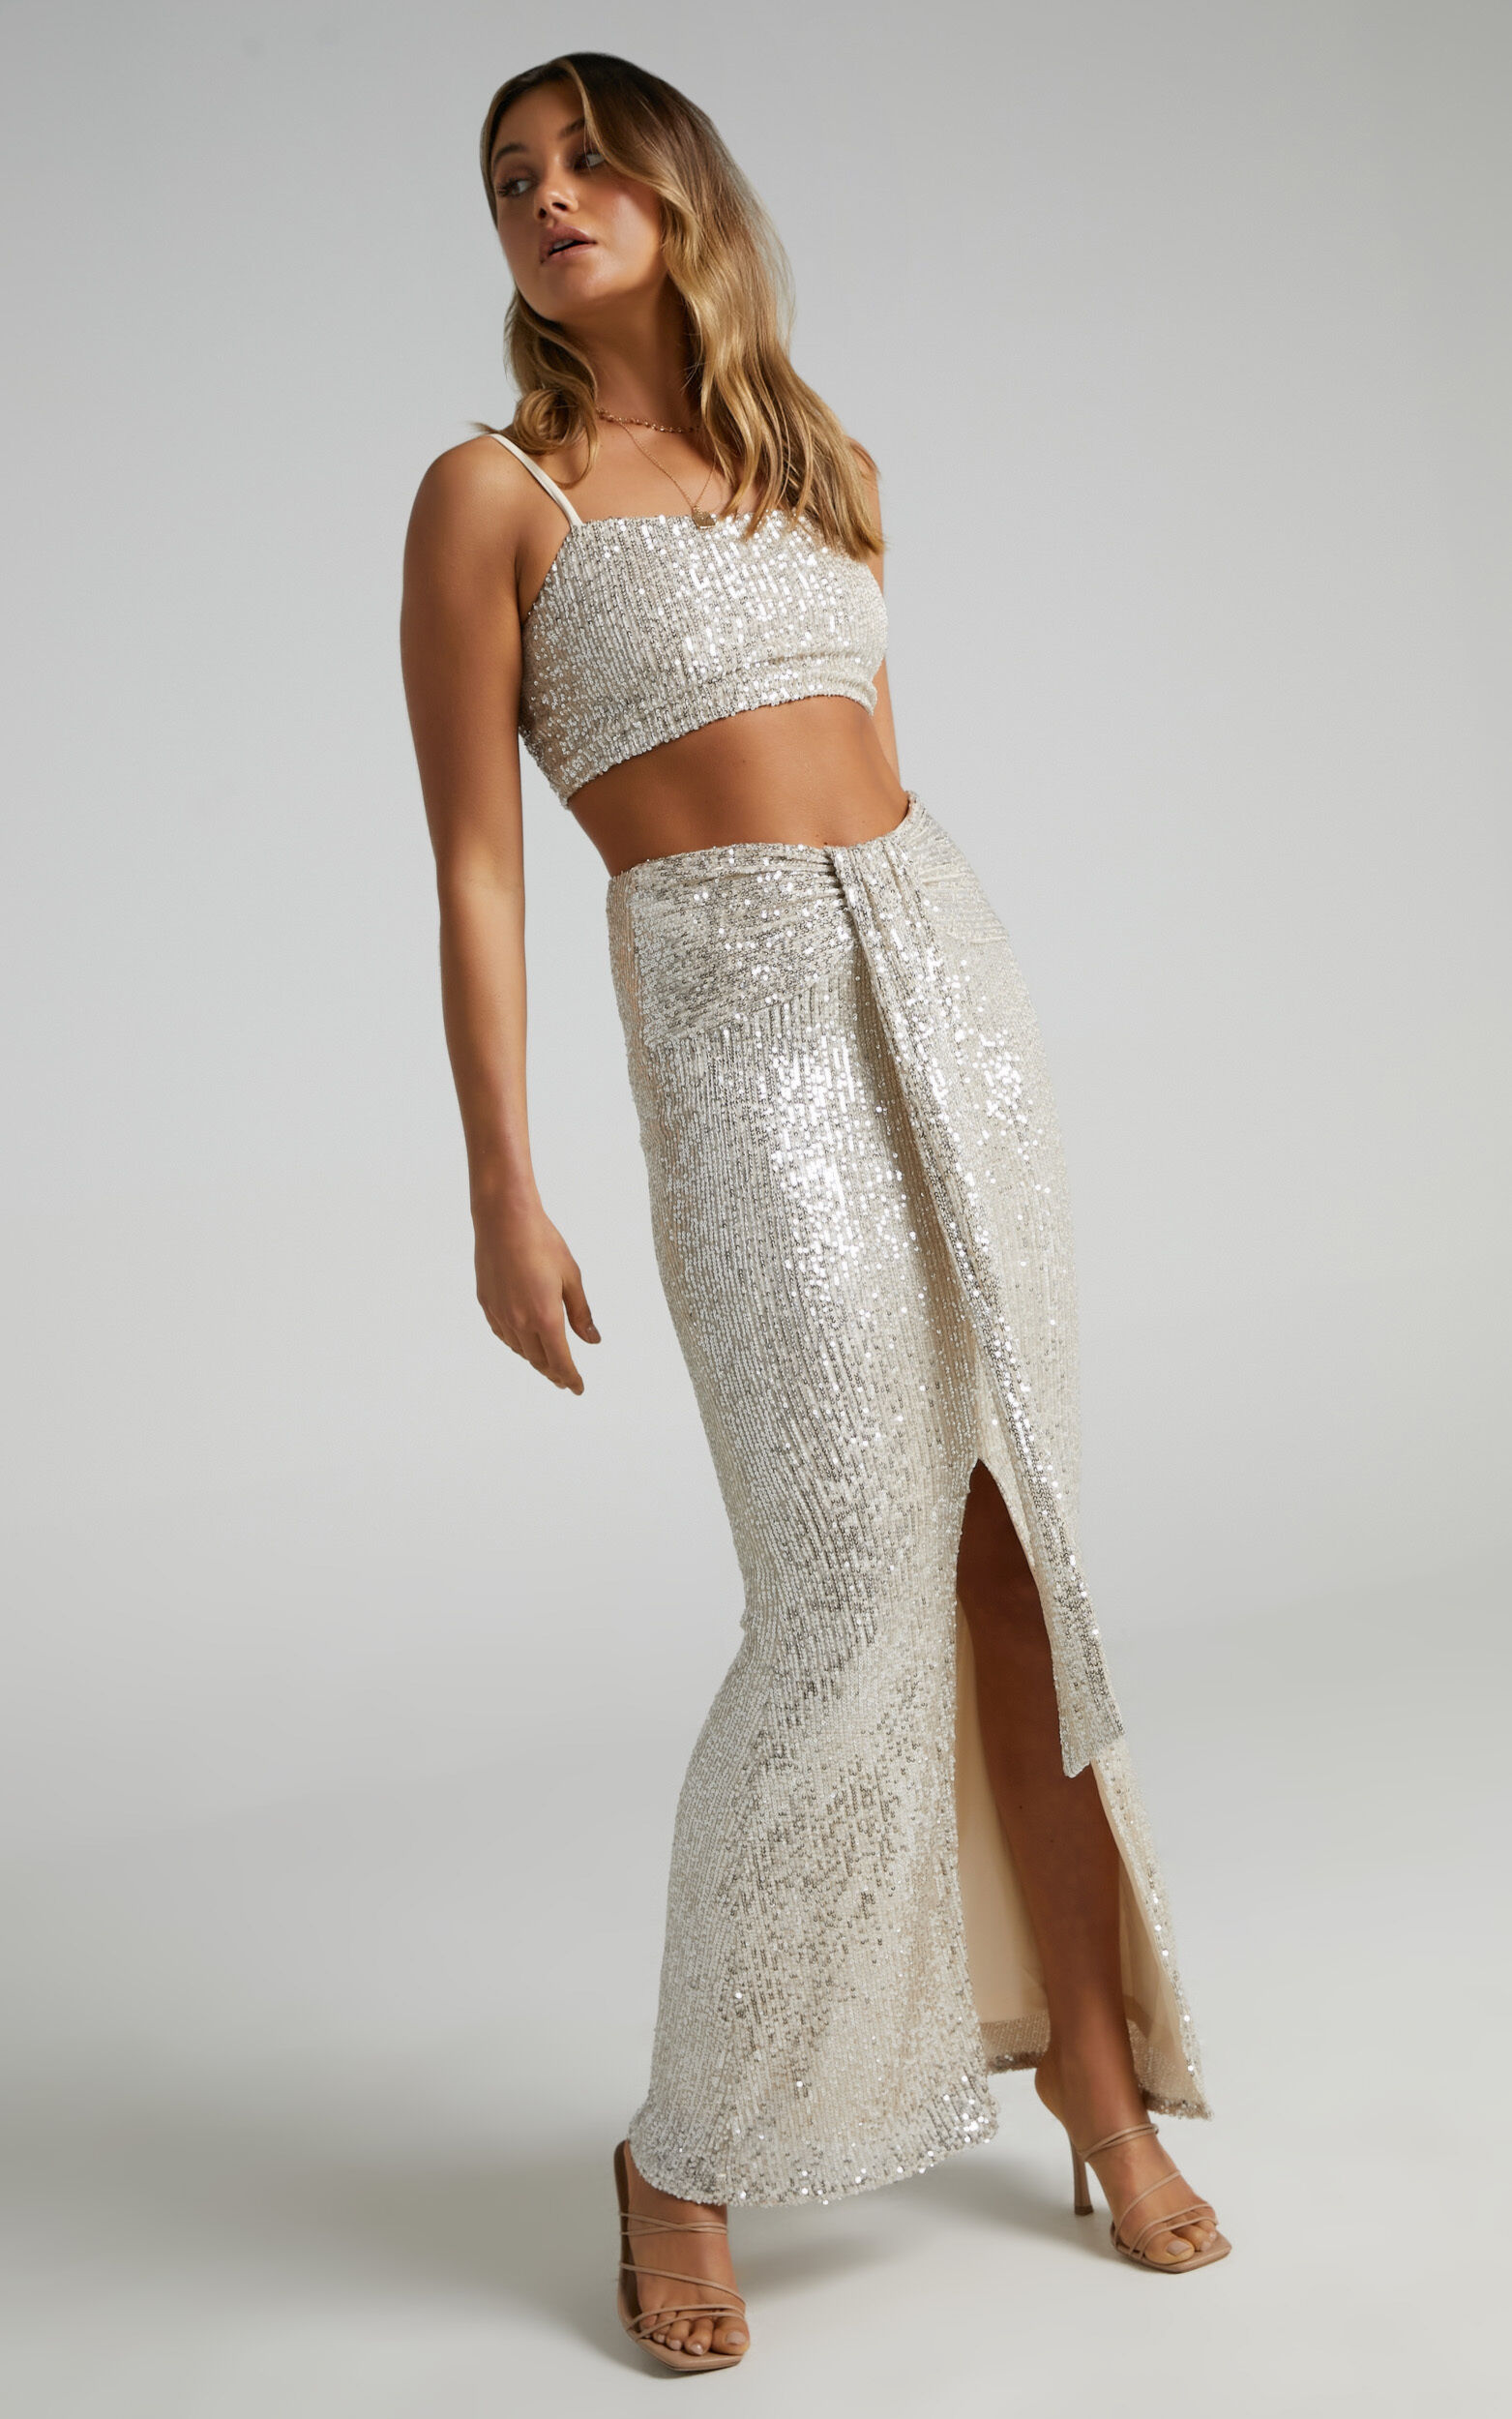 Amae Square Neck Drape Two Piece Set in Champagne Sequin - 06, GLD2, super-hi-res image number null